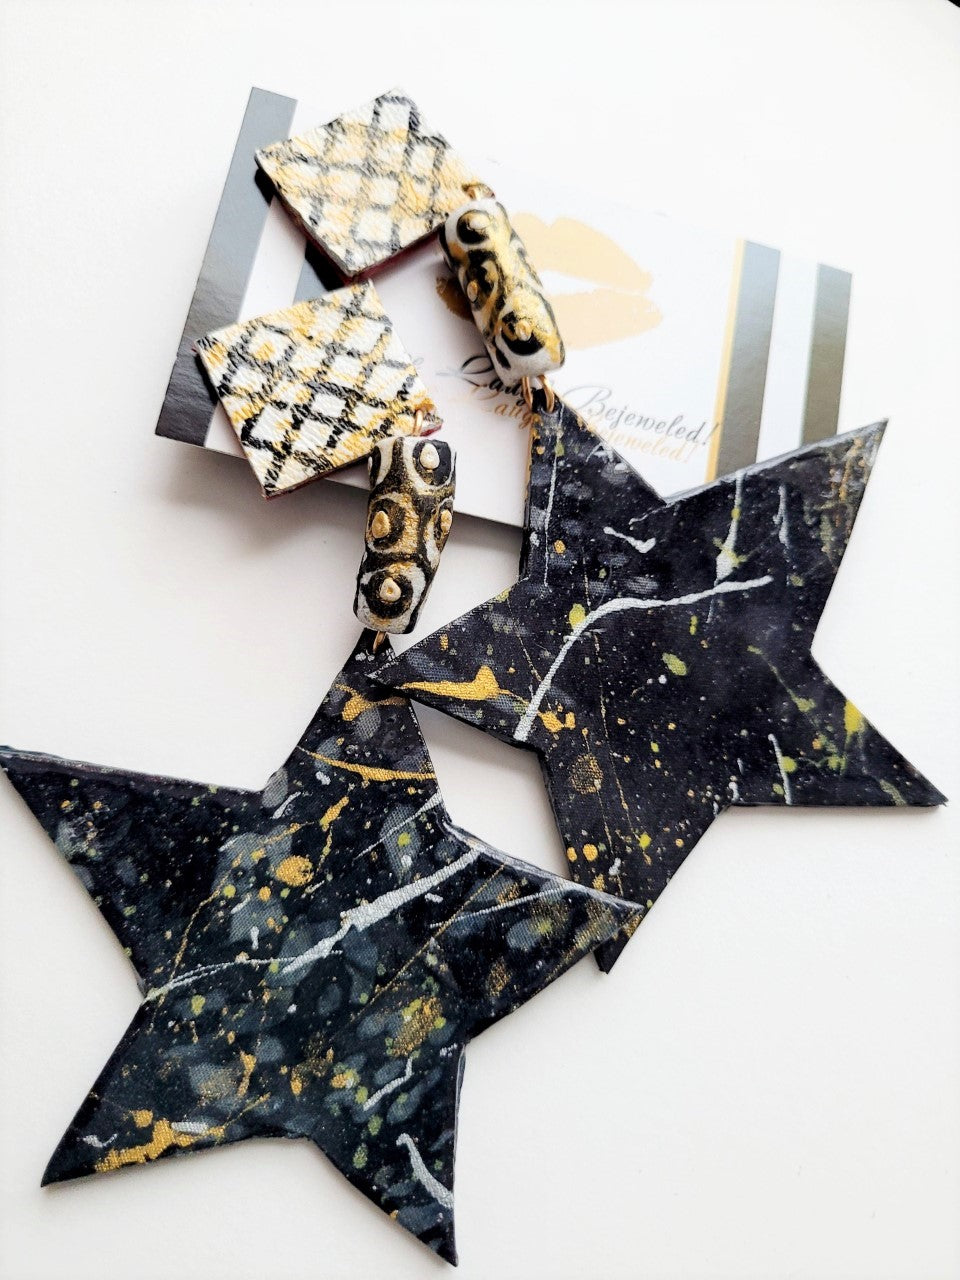 'Star Ship' Black + Silver + Gold Custom-Painted Leather Dangles